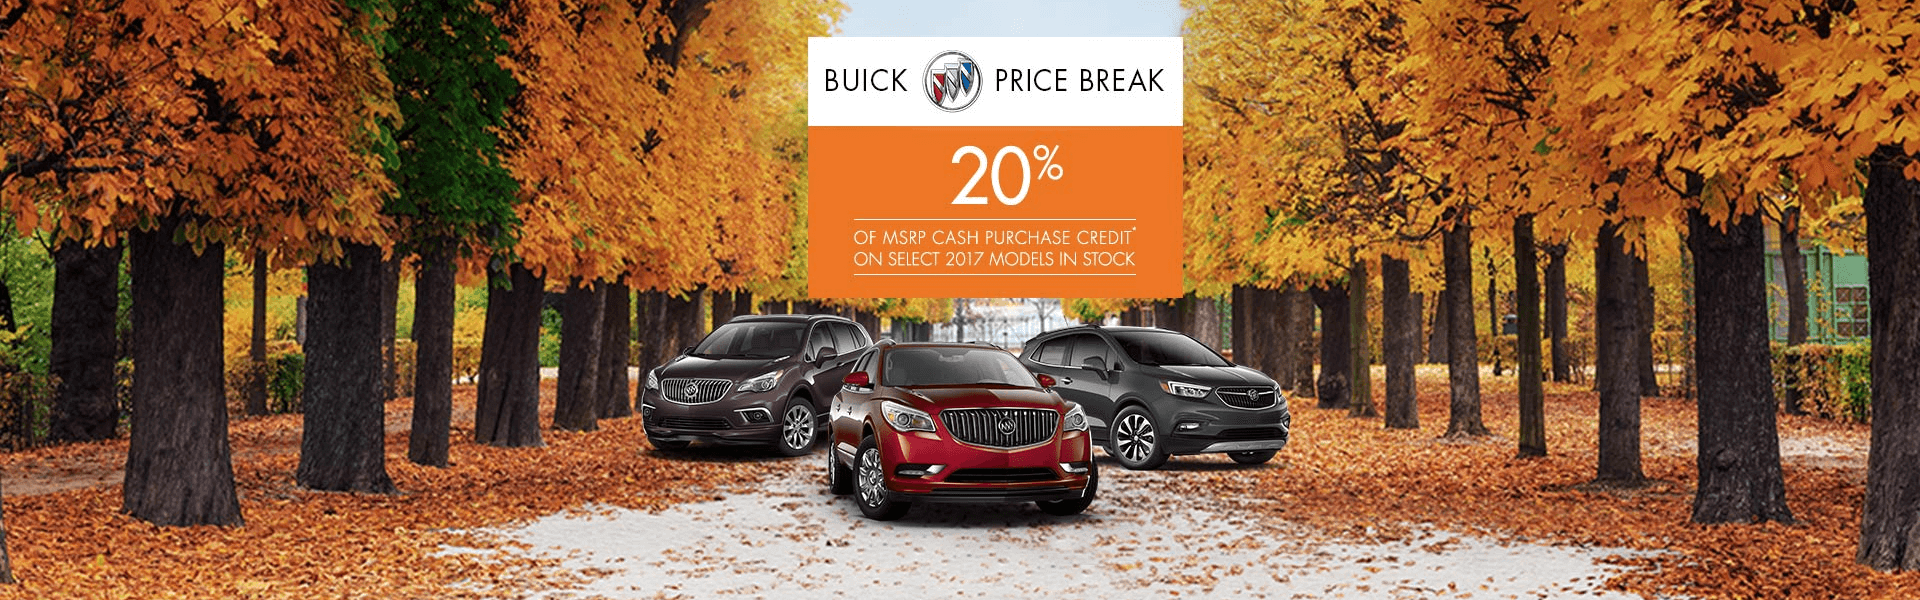 Buick 20% OFF MSRP